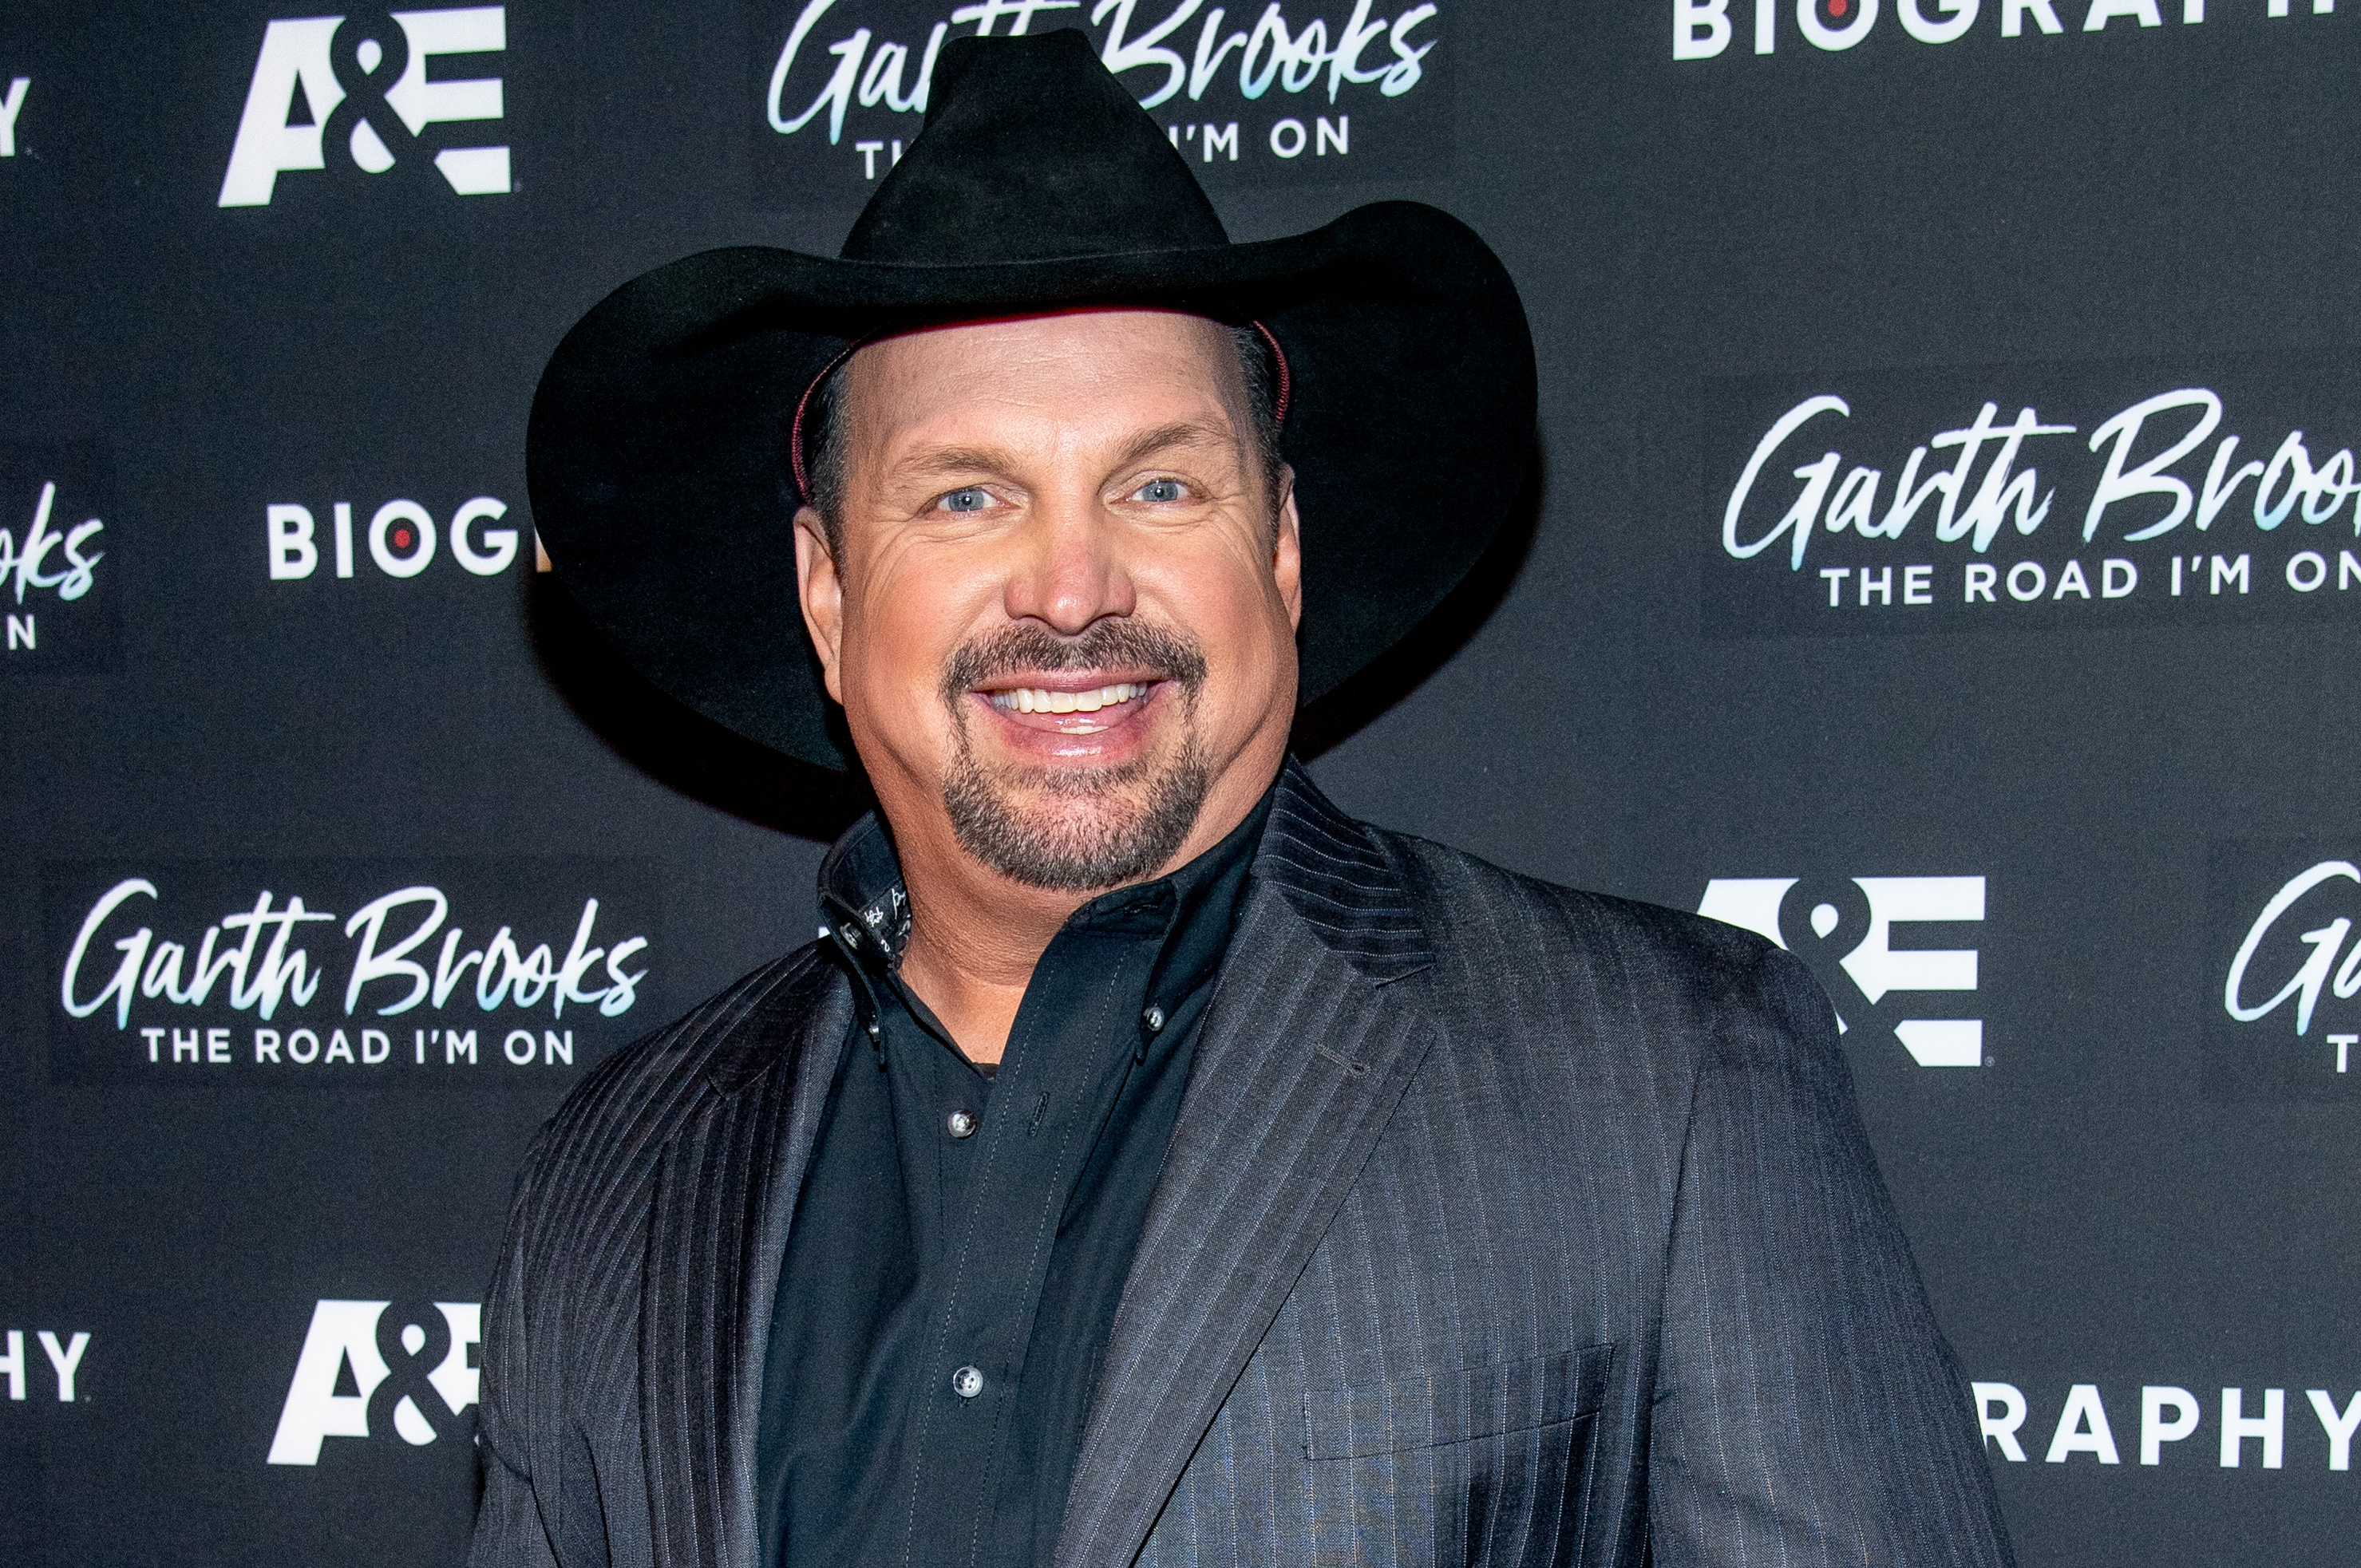 Garth Brooks Drops Two New Tracks From Fun Album Sounds Like